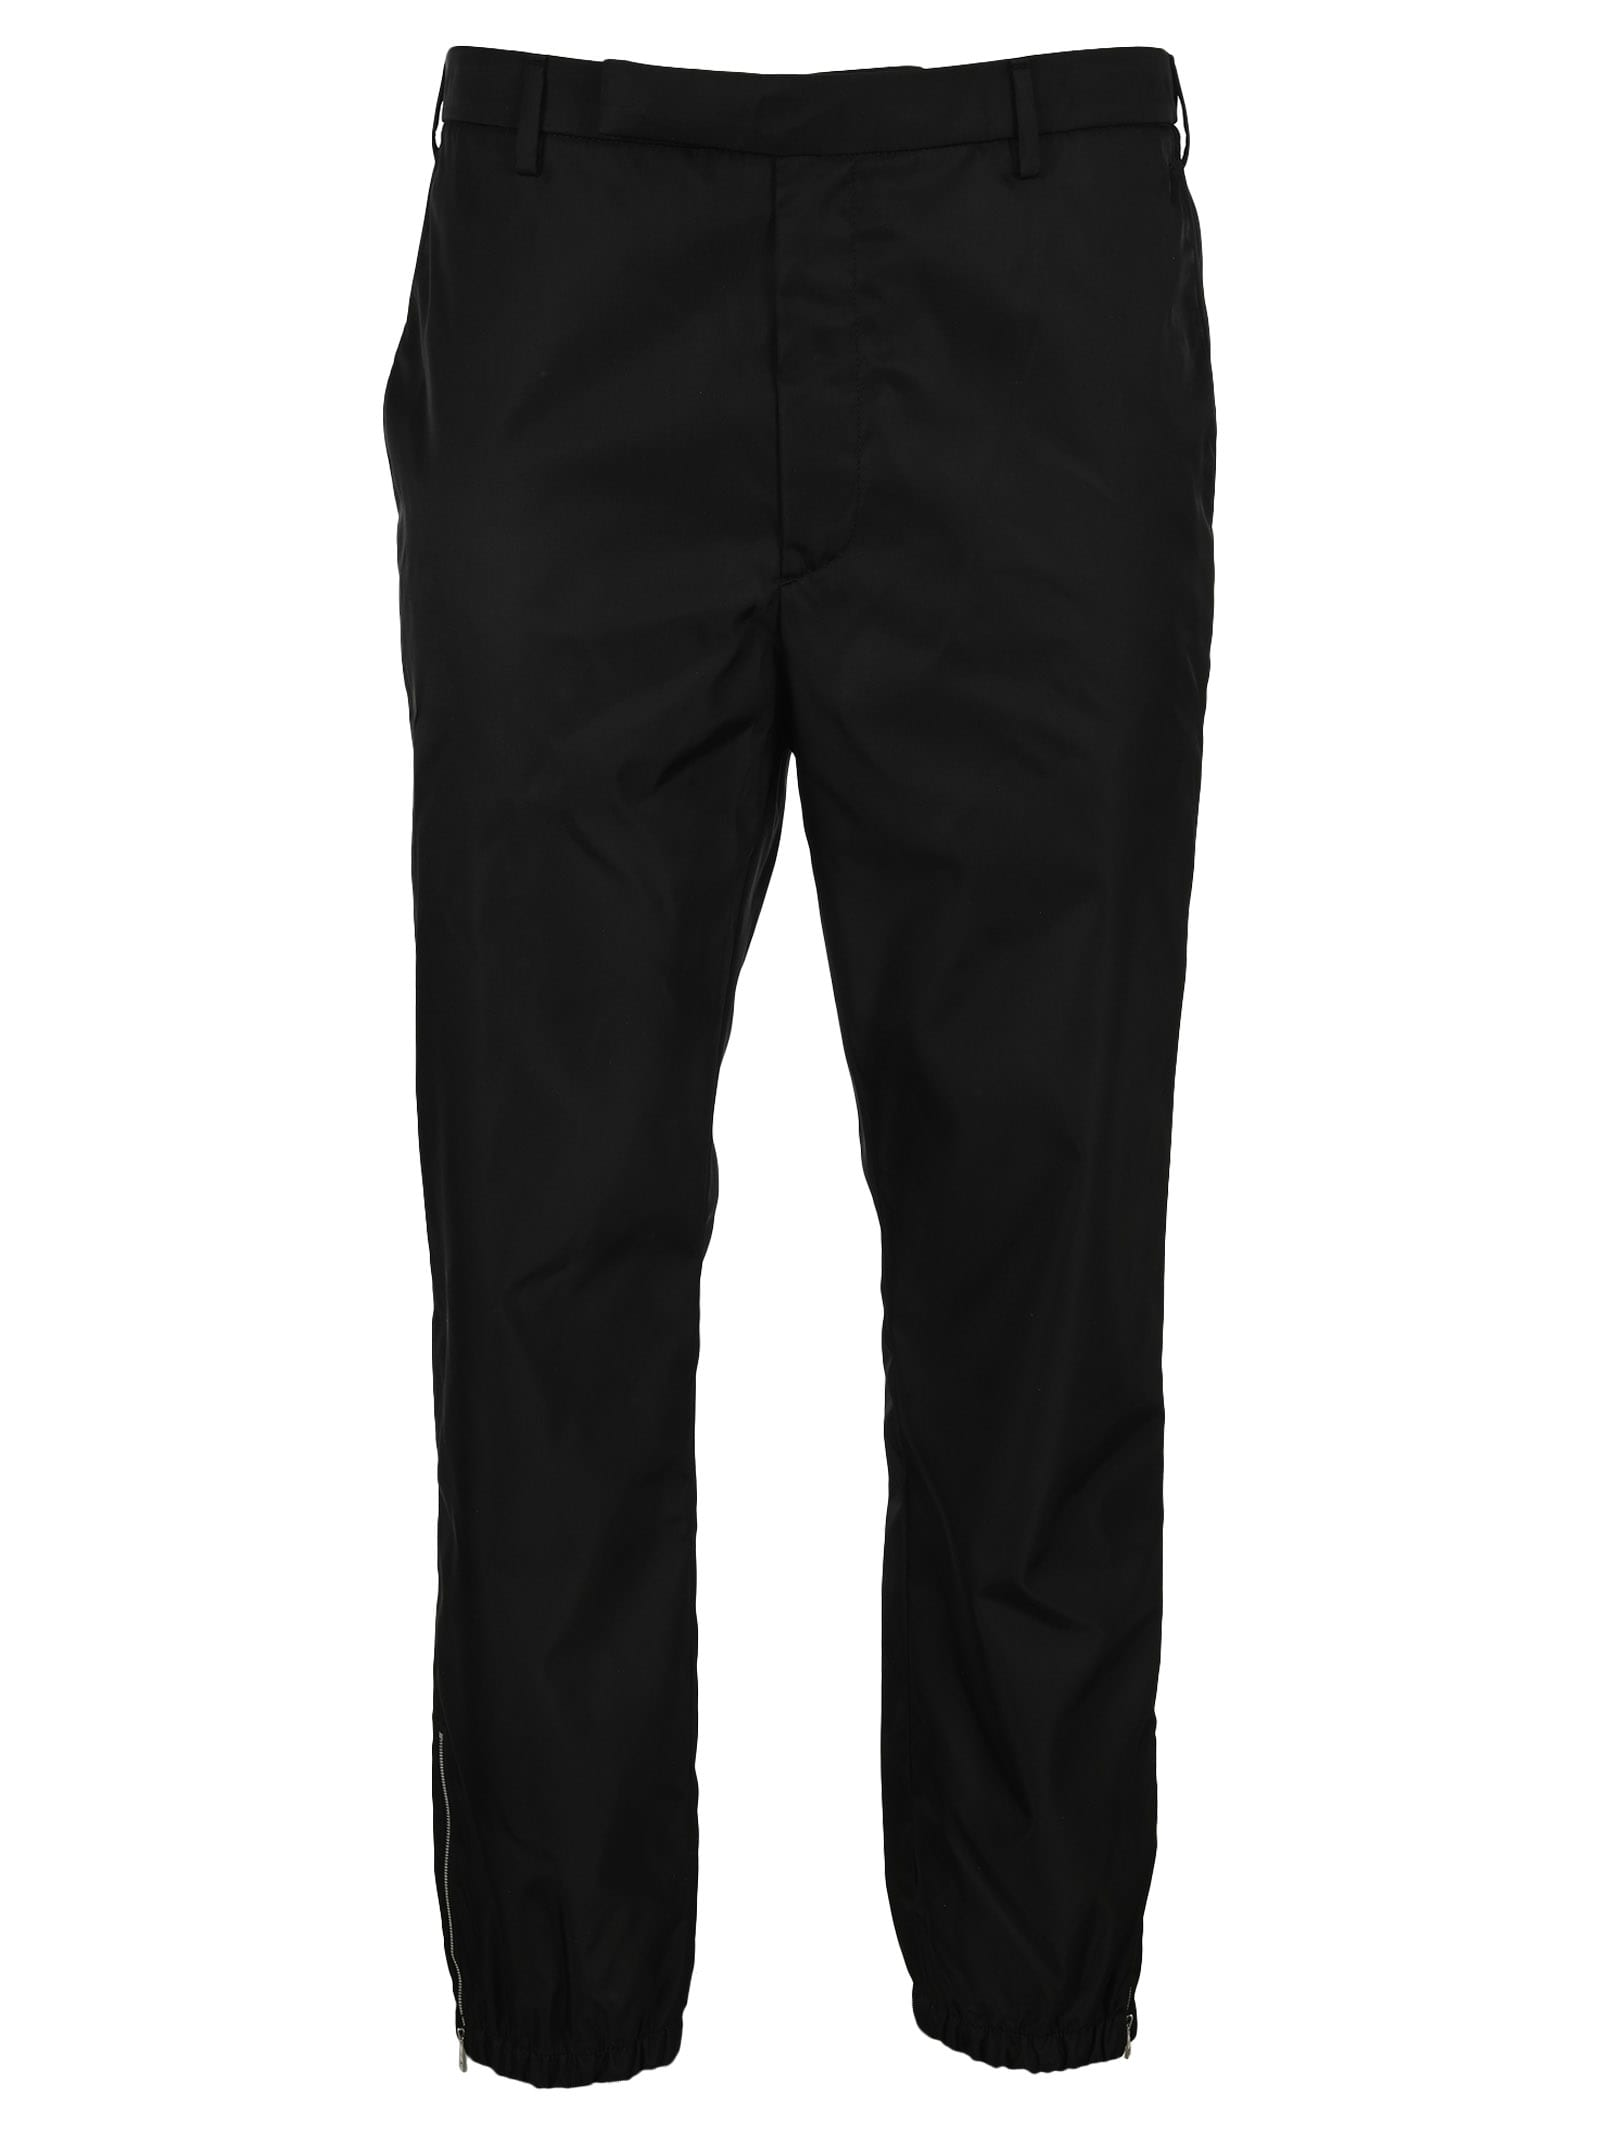 Prada Re-nylon Trousers In Black